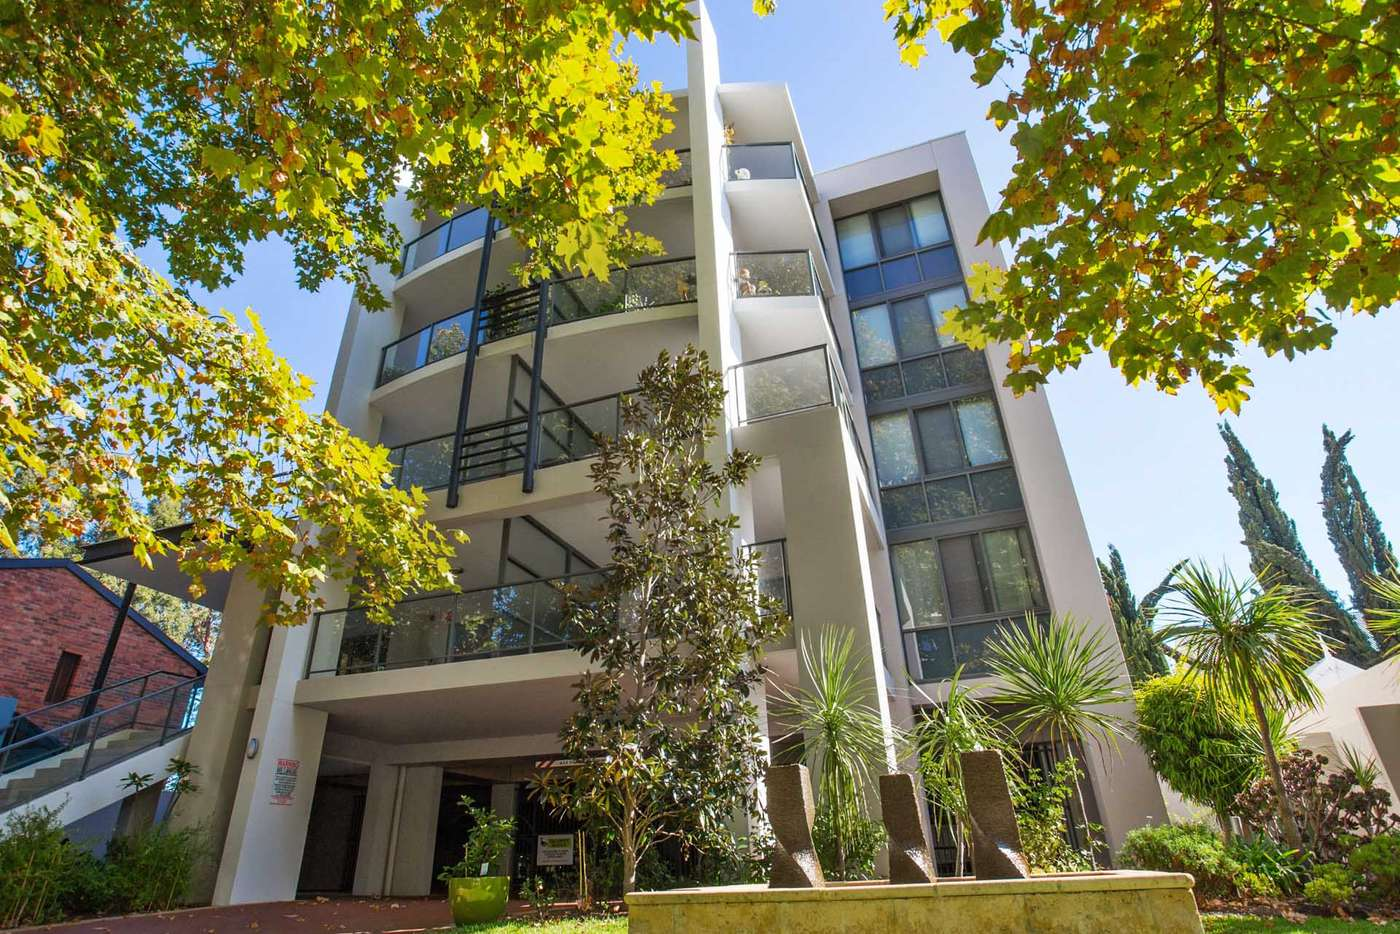 Main view of Homely apartment listing, 5/15 Stone Street, South Perth WA 6151